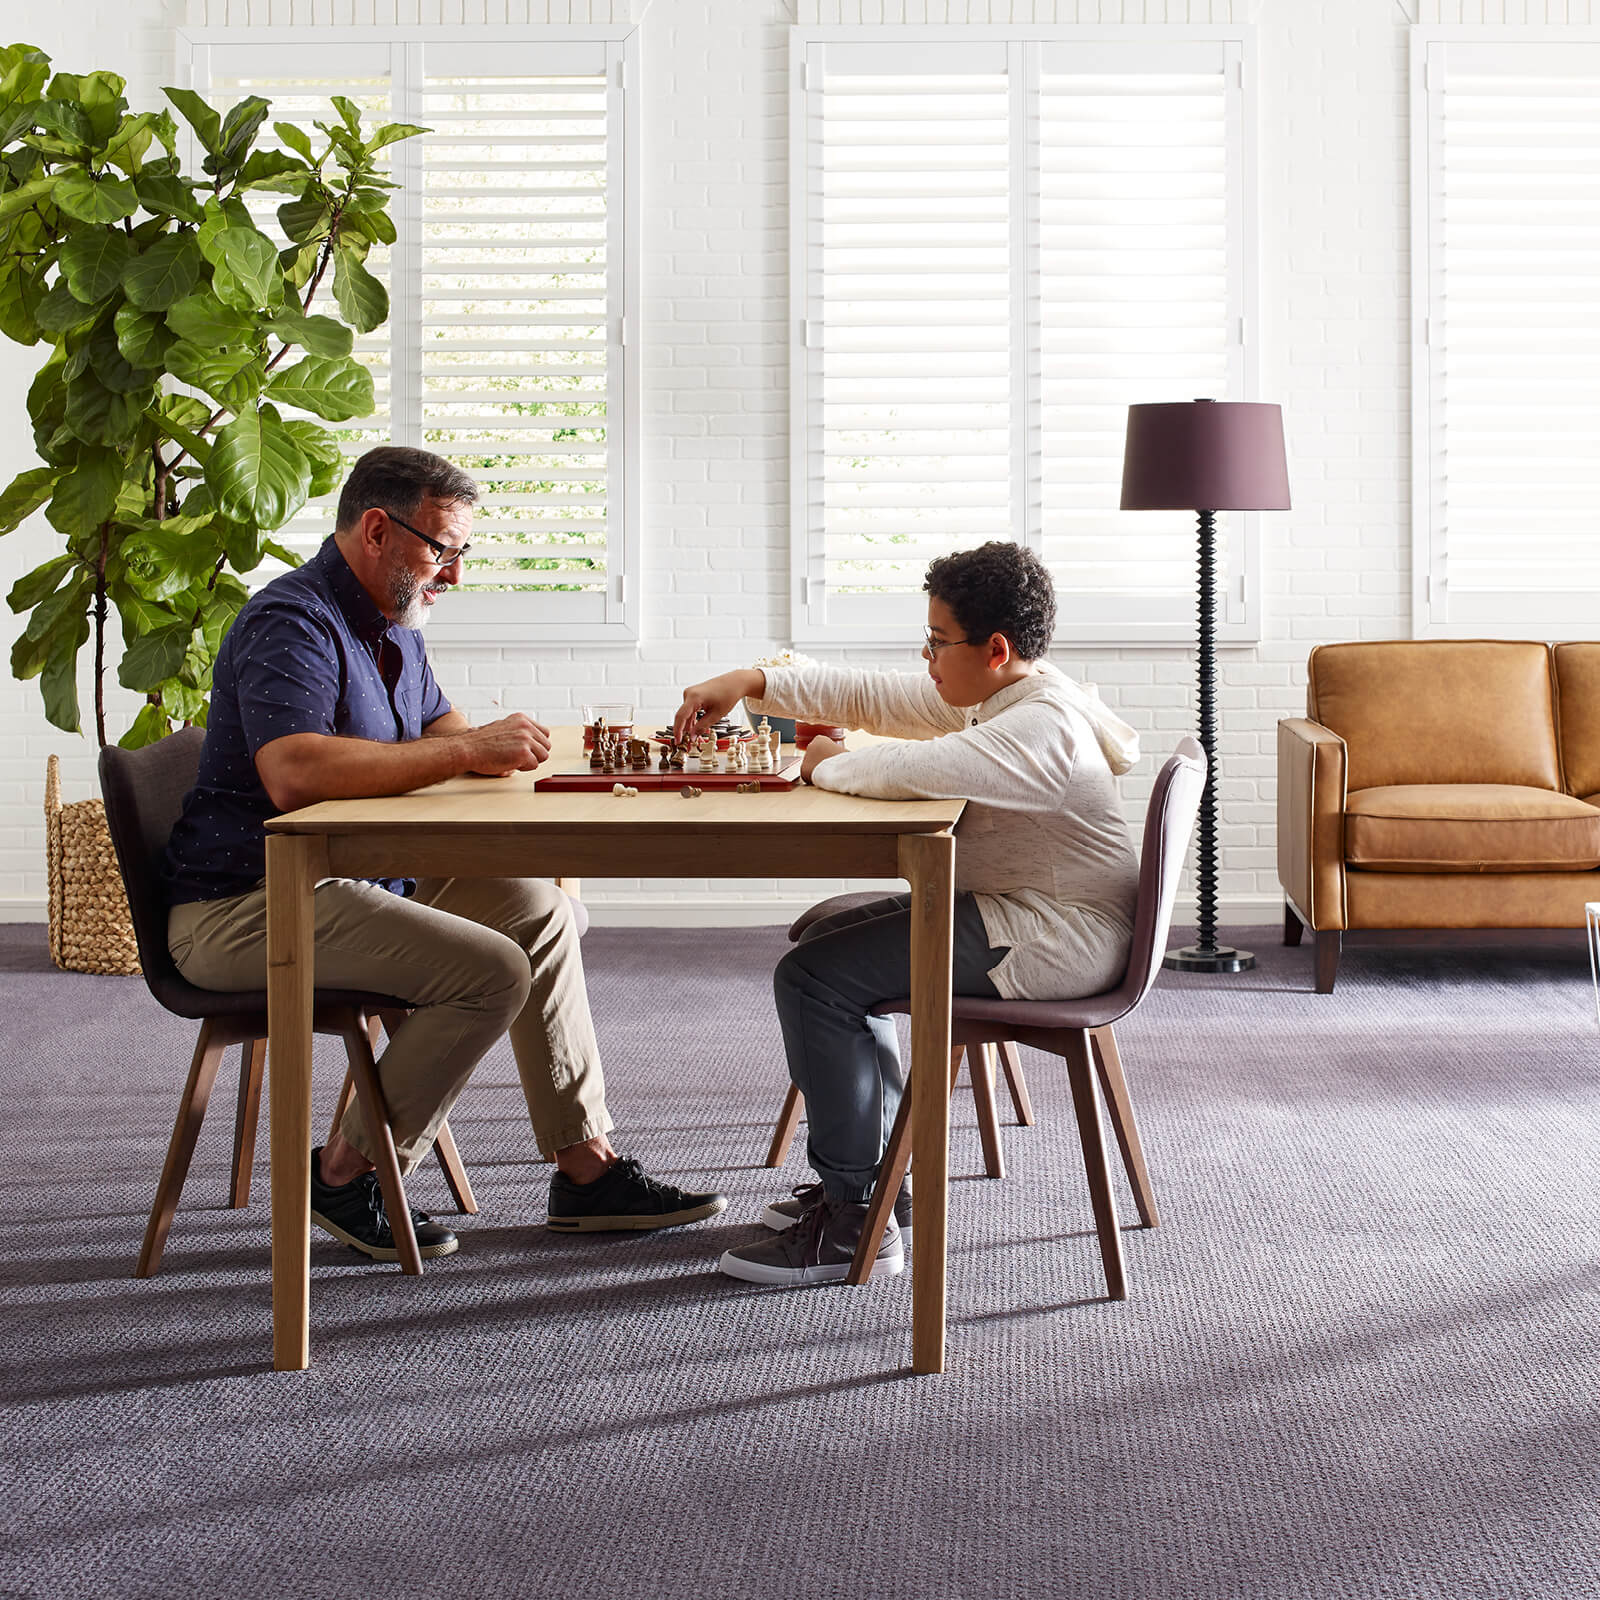 Playing chess on Carpet | We'll Floor You